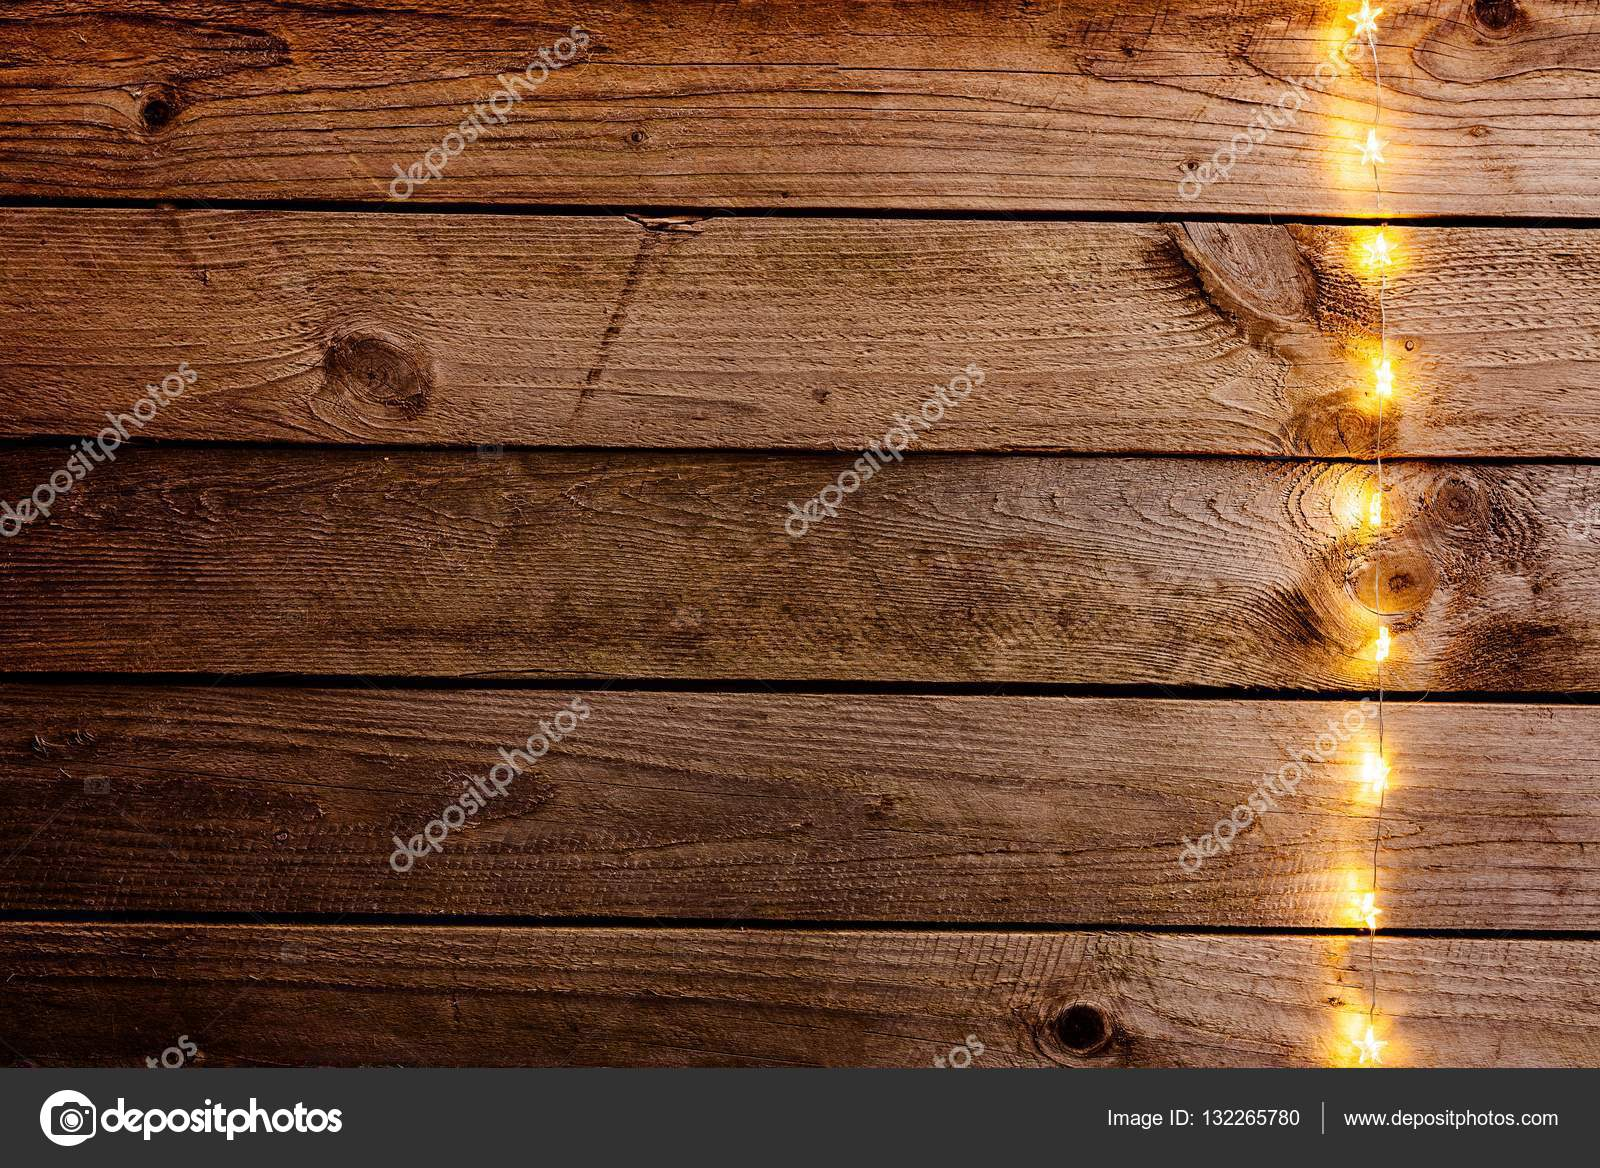 old wooden rustic christmas background stock photo - Rustic Christmas Background